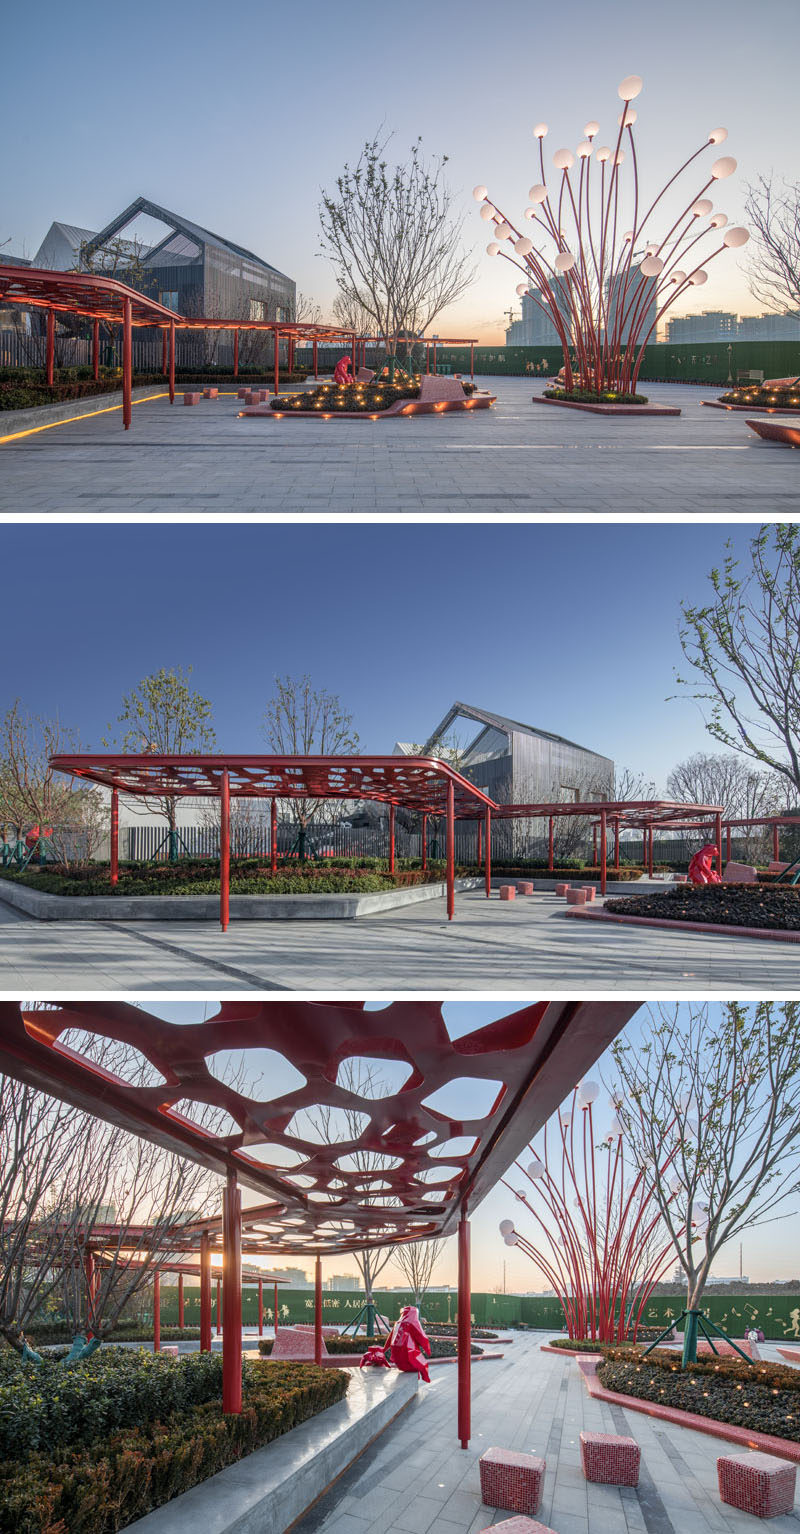 This modern public plaza has a variety of seating options, like a built-in concrete bench that sits underneath a red pergola and that wraps around the planters.#Park #Plaza #LandscapeDesign